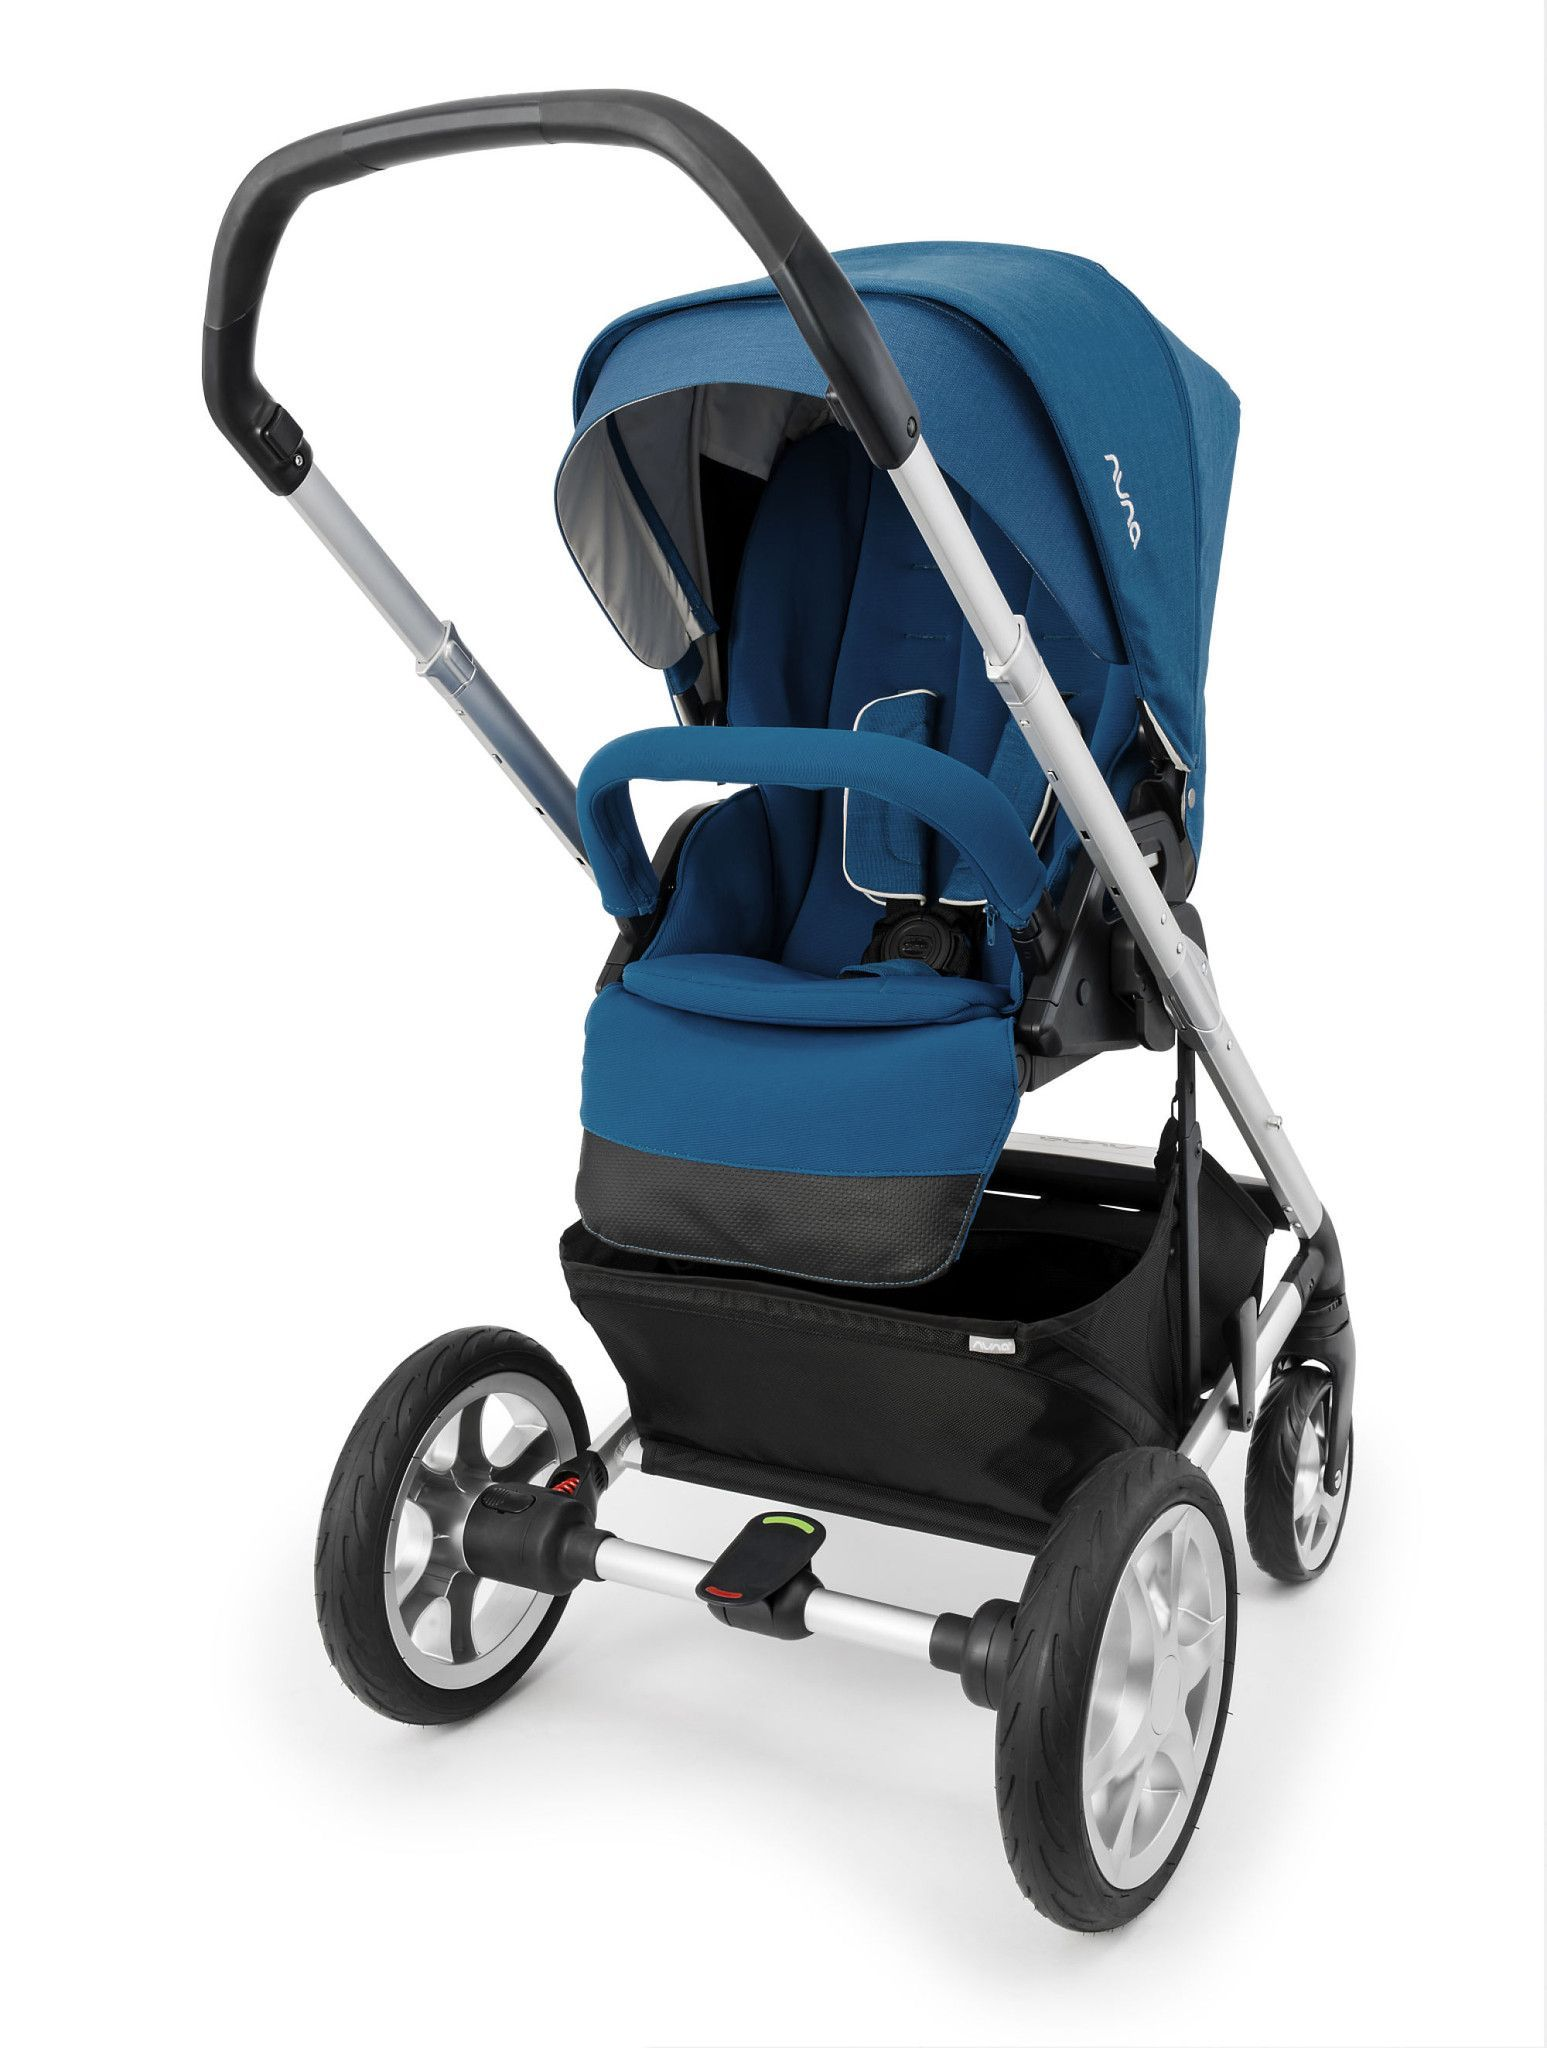 AtAGlance Features The Nuna Mixx Stroller is a